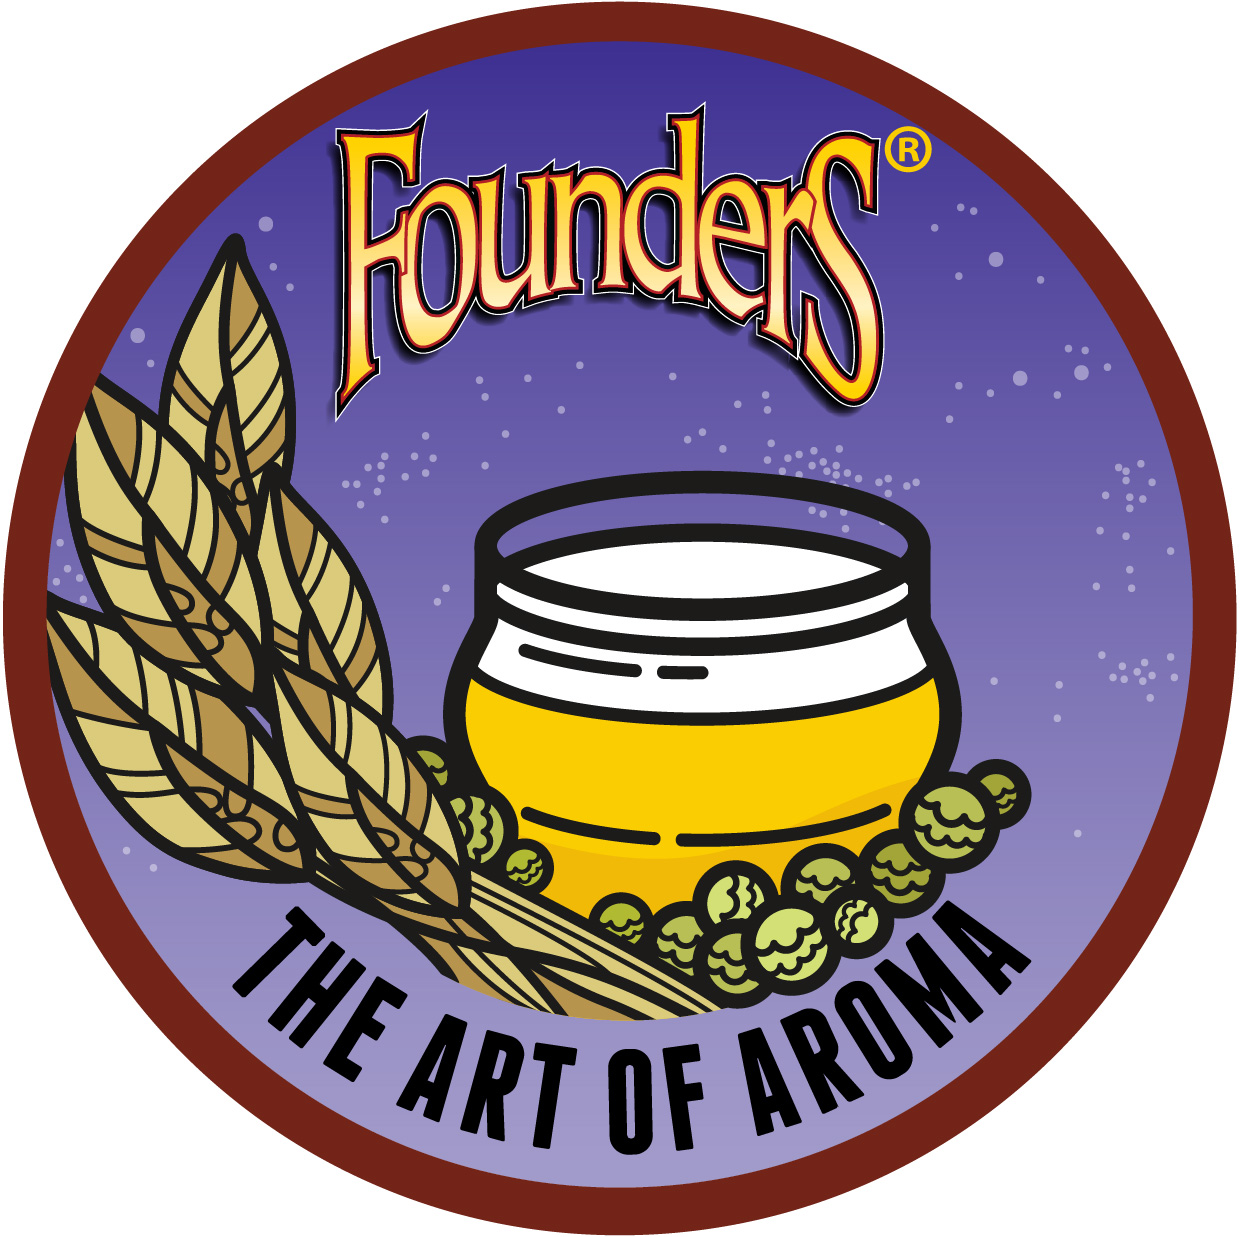 Founders The Art of Aroma beer badge